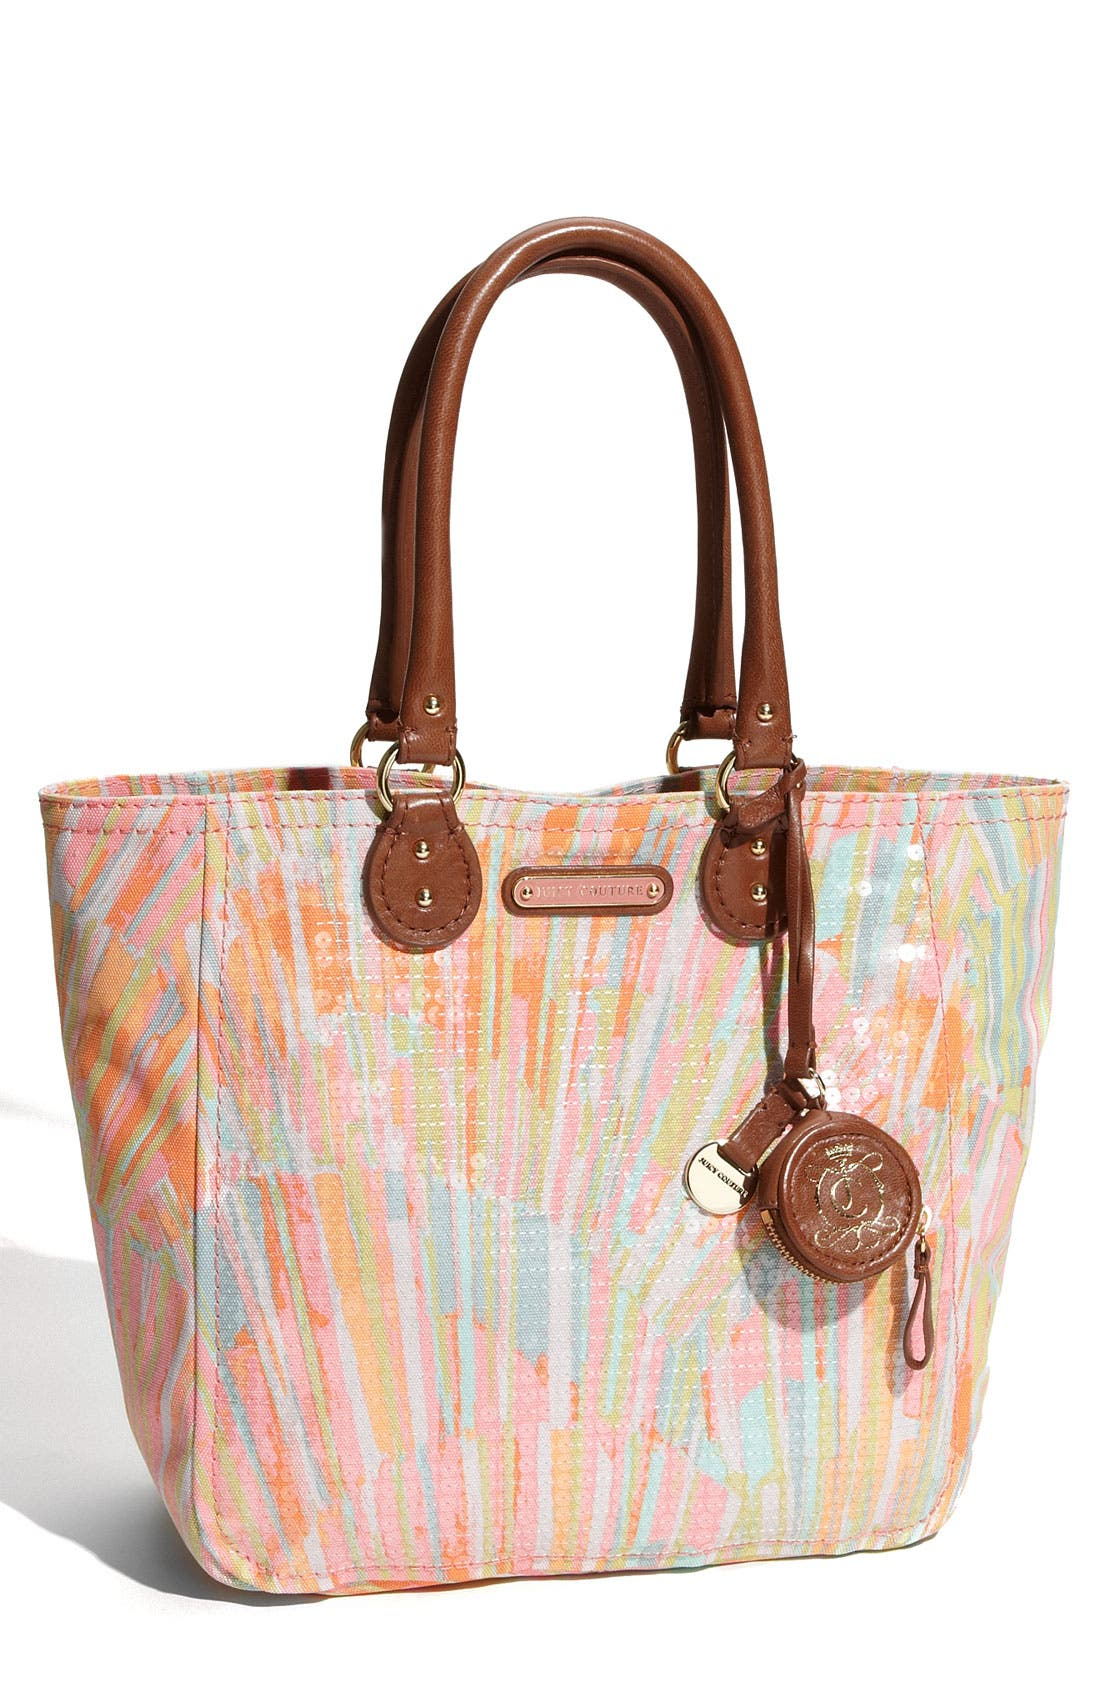 Main Image - Juicy Couture 'Sunburst Sequins - Small' Tote